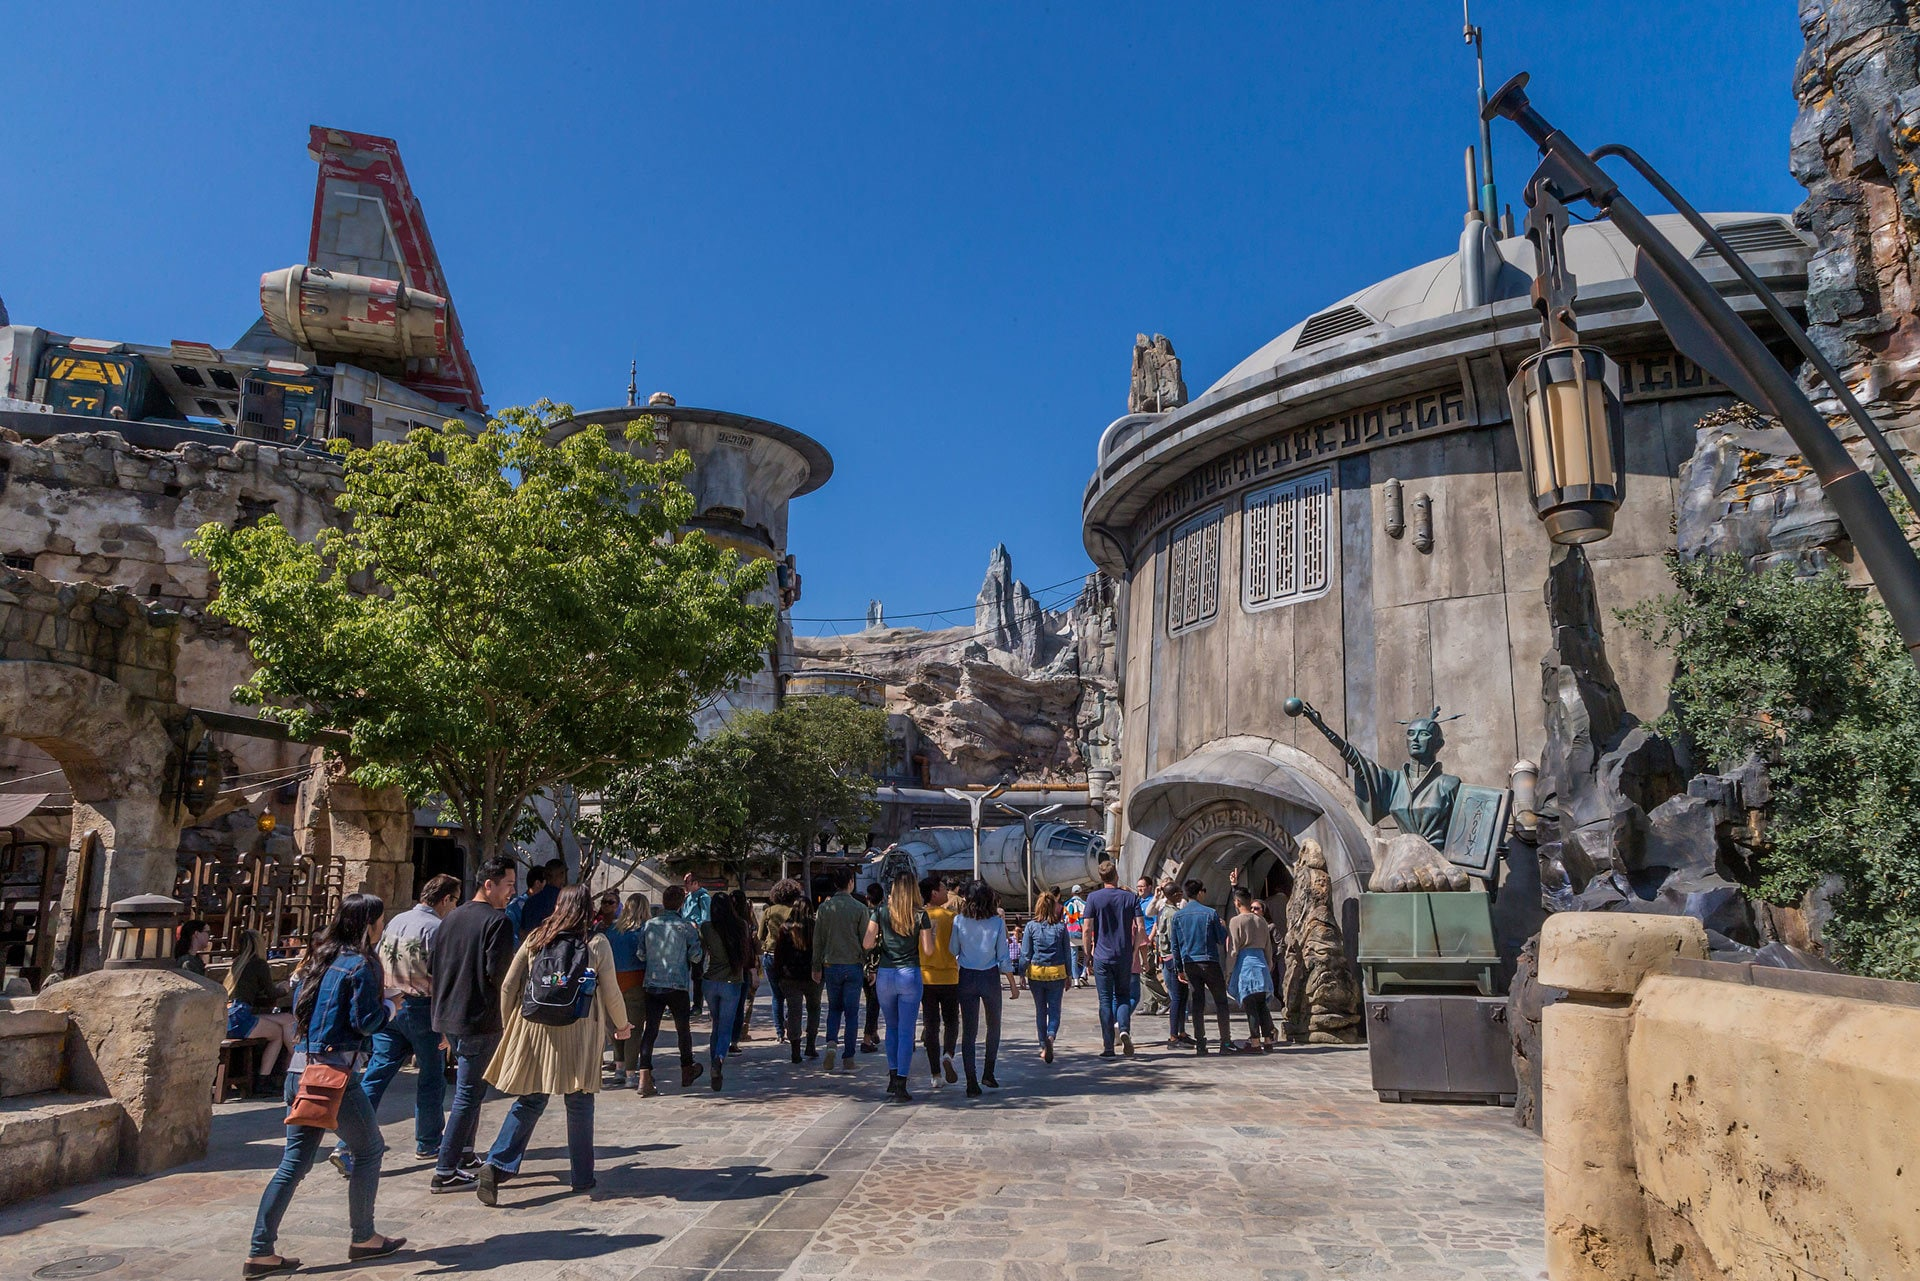 Guests visiting Star Wars: Galaxy's Edge will be able to wander the lively marketplace of Black Spire Outpost and encounter a robust collection of merchant shops and stalls filled with authentic Star Wars creations.